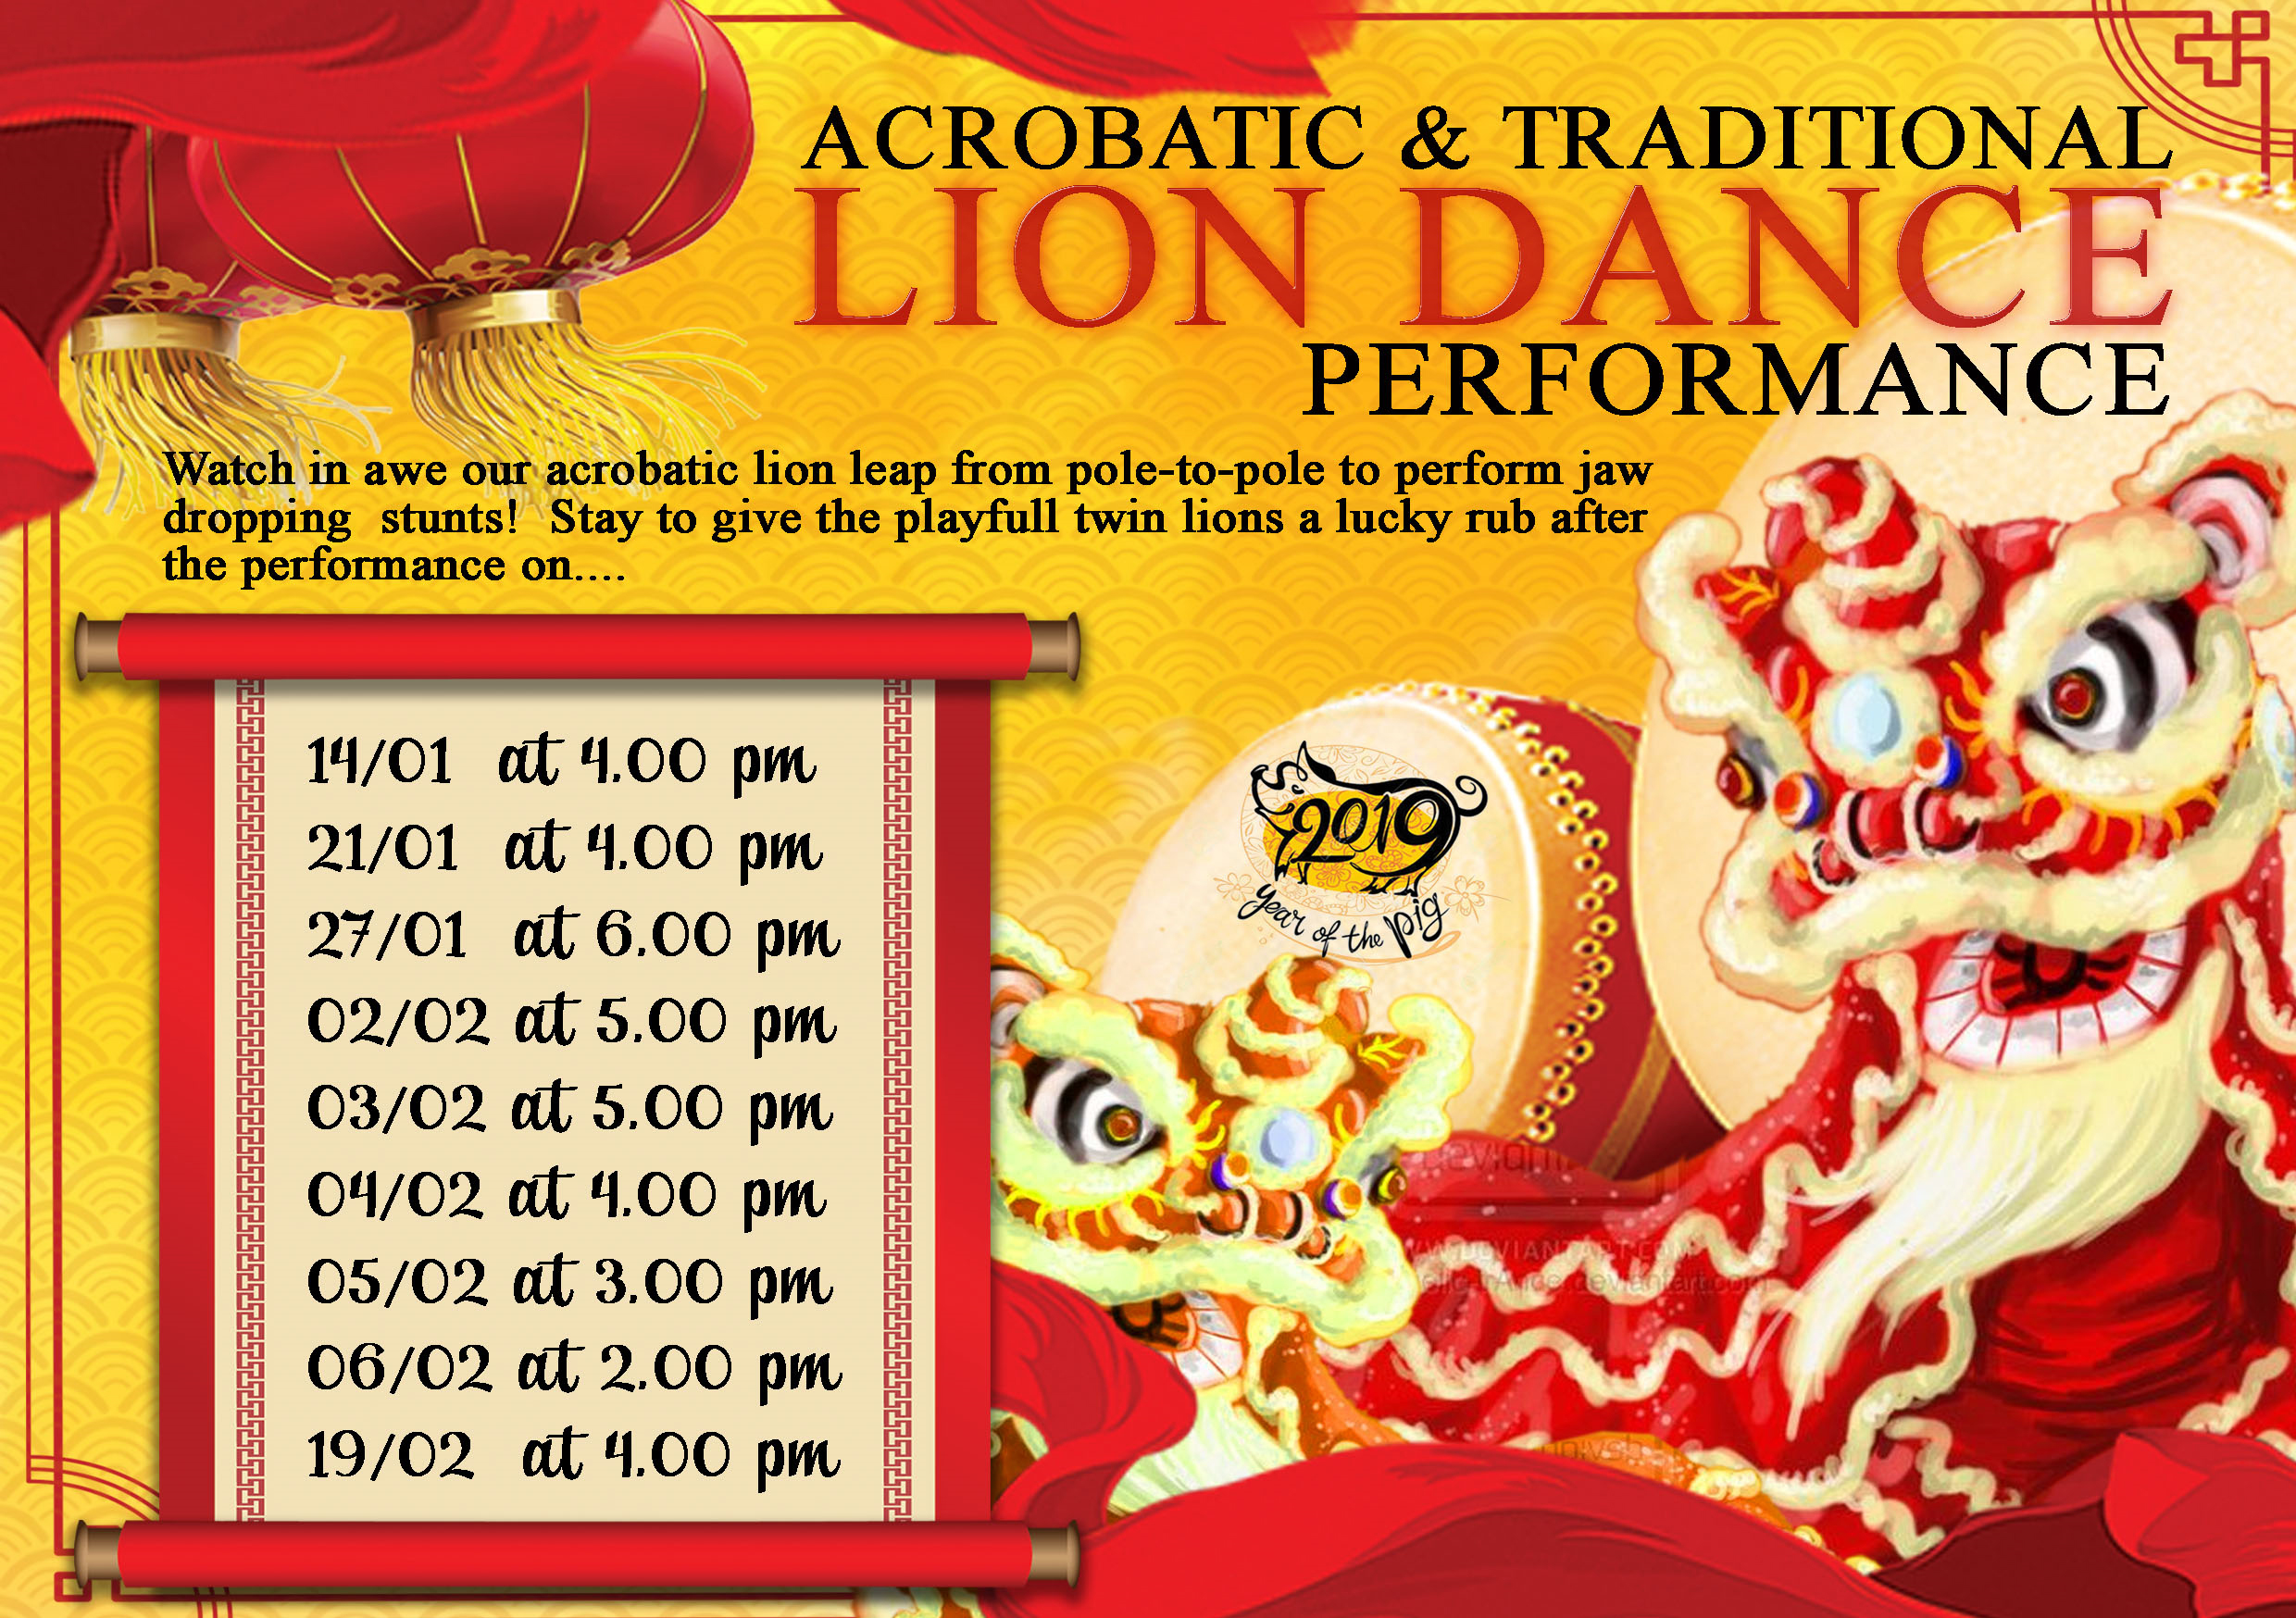 Acrobatic & Traditional Lion Dance Performance for 2019